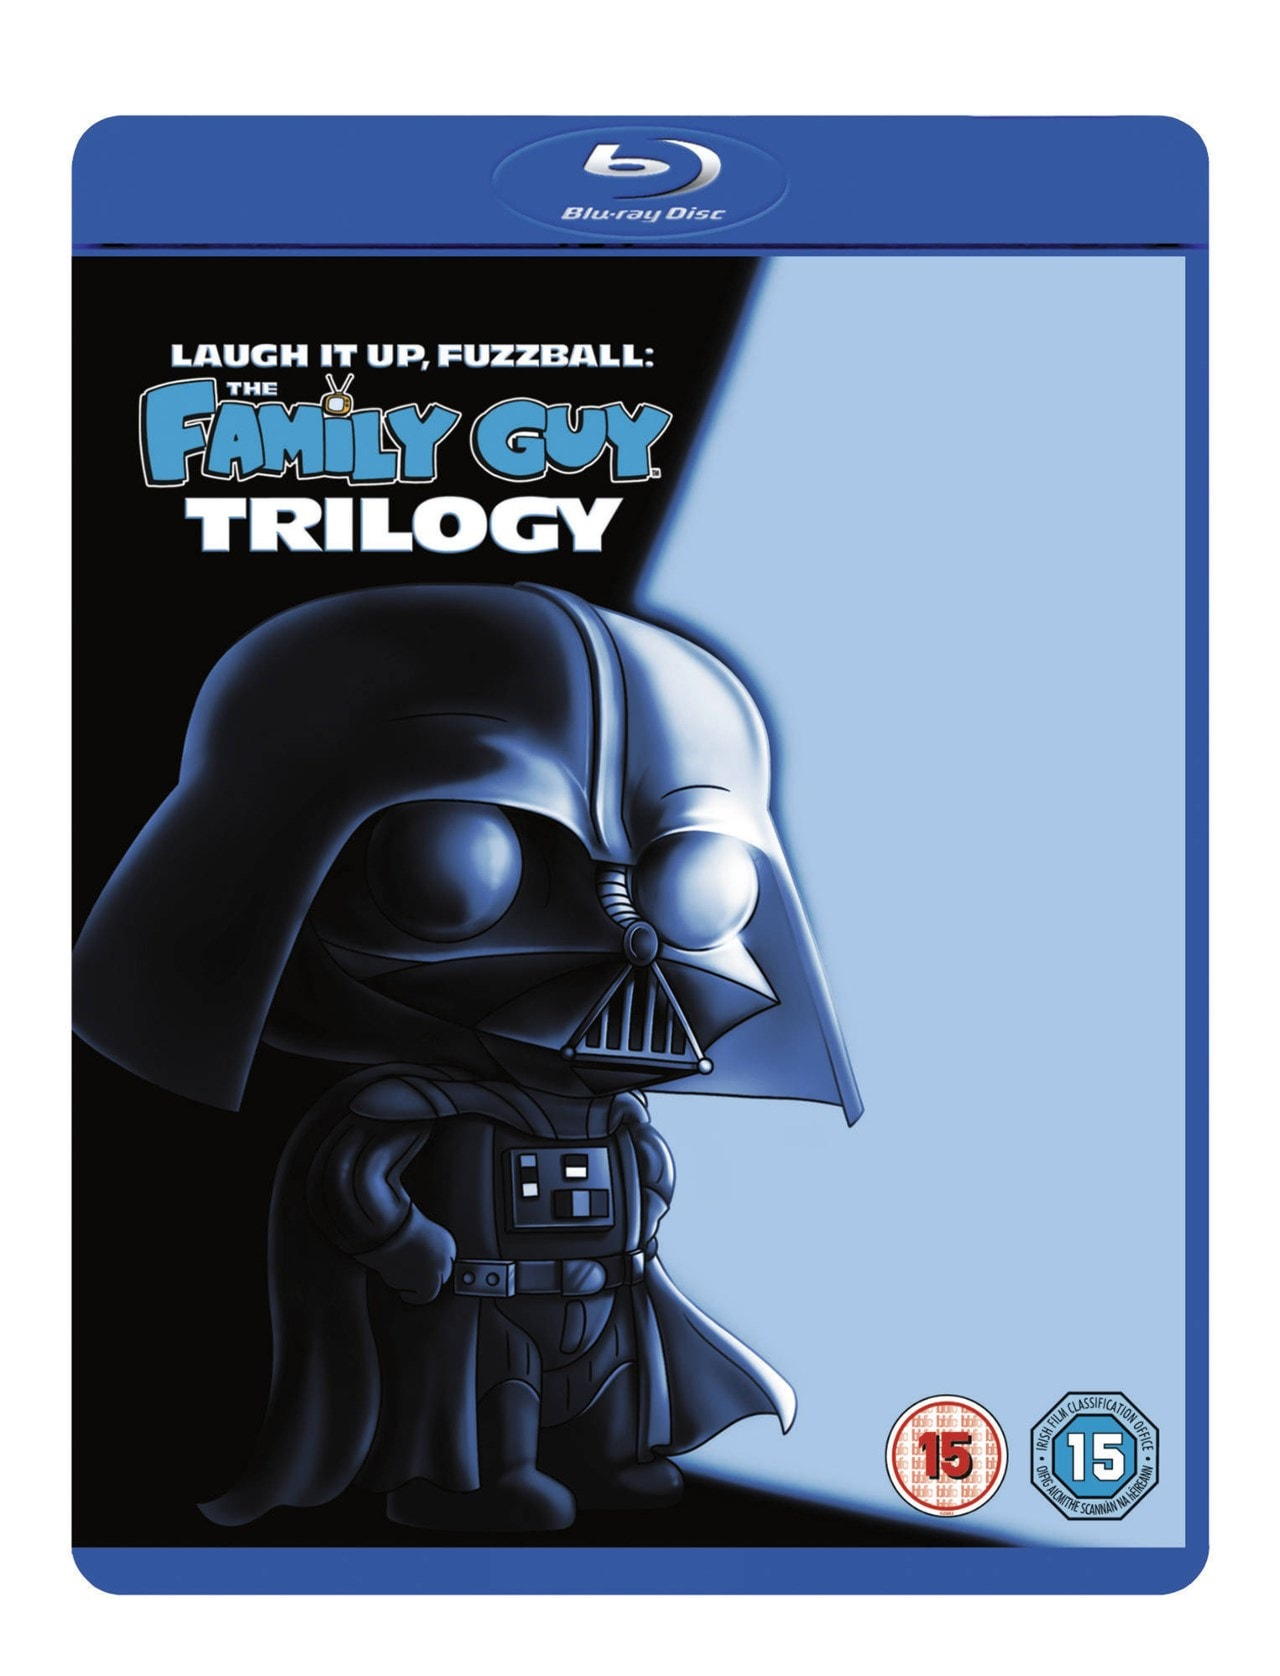 Family Guy Star Wars Trilogy - Laugh It Up Fuzzball - 1